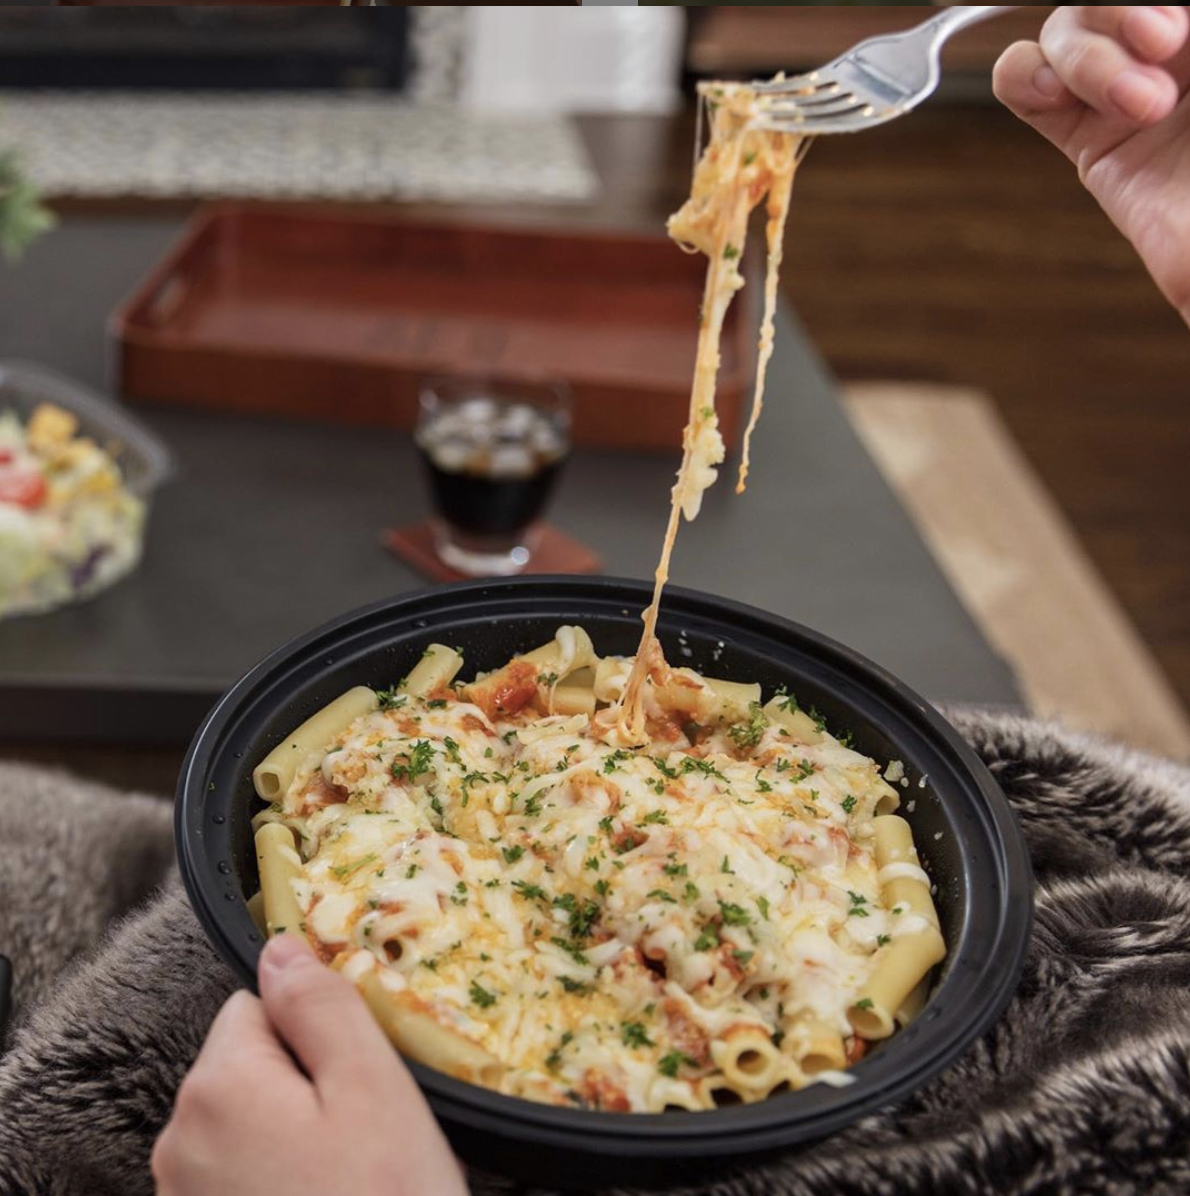 Olive Garden Is Offering BOGO Entrees If You Take Them To